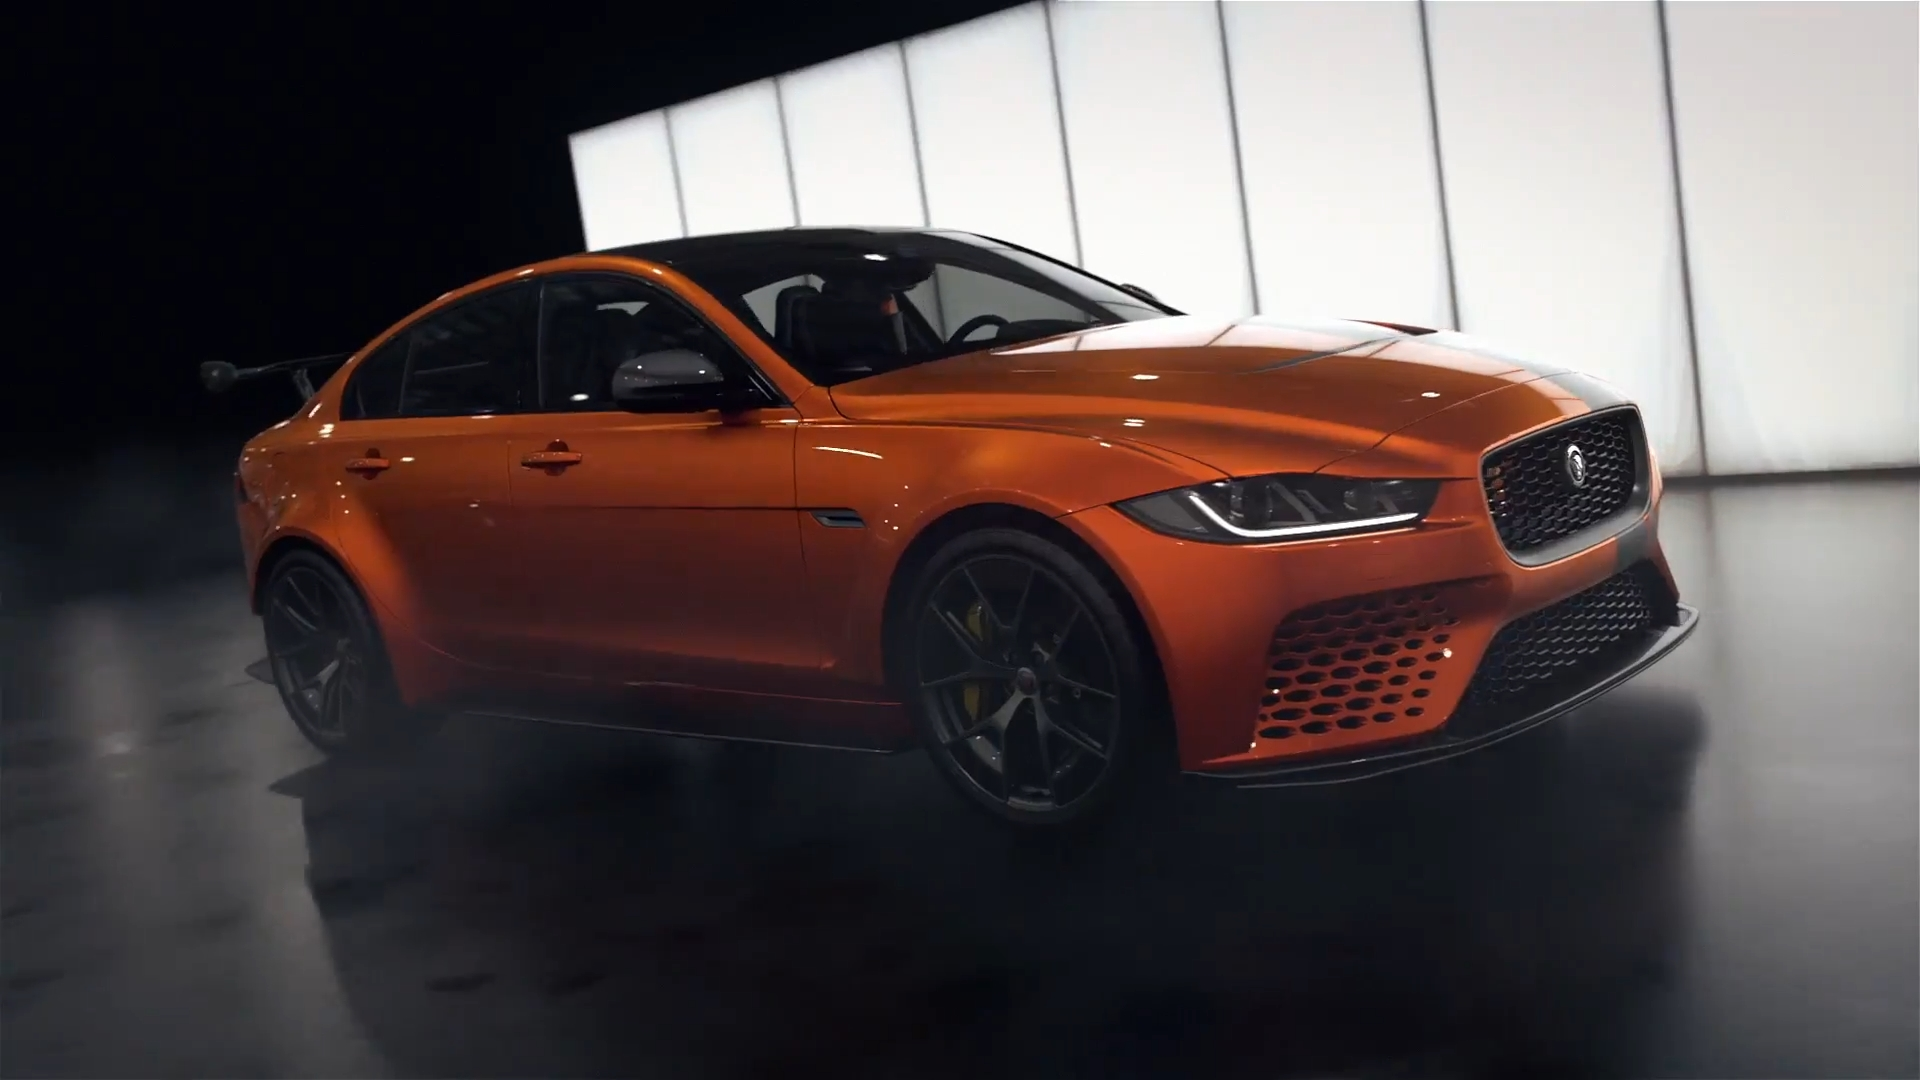 2017 LA Auto Show New Jaguar XE Project 8 and Range Rover PHEV in Los Angeles en